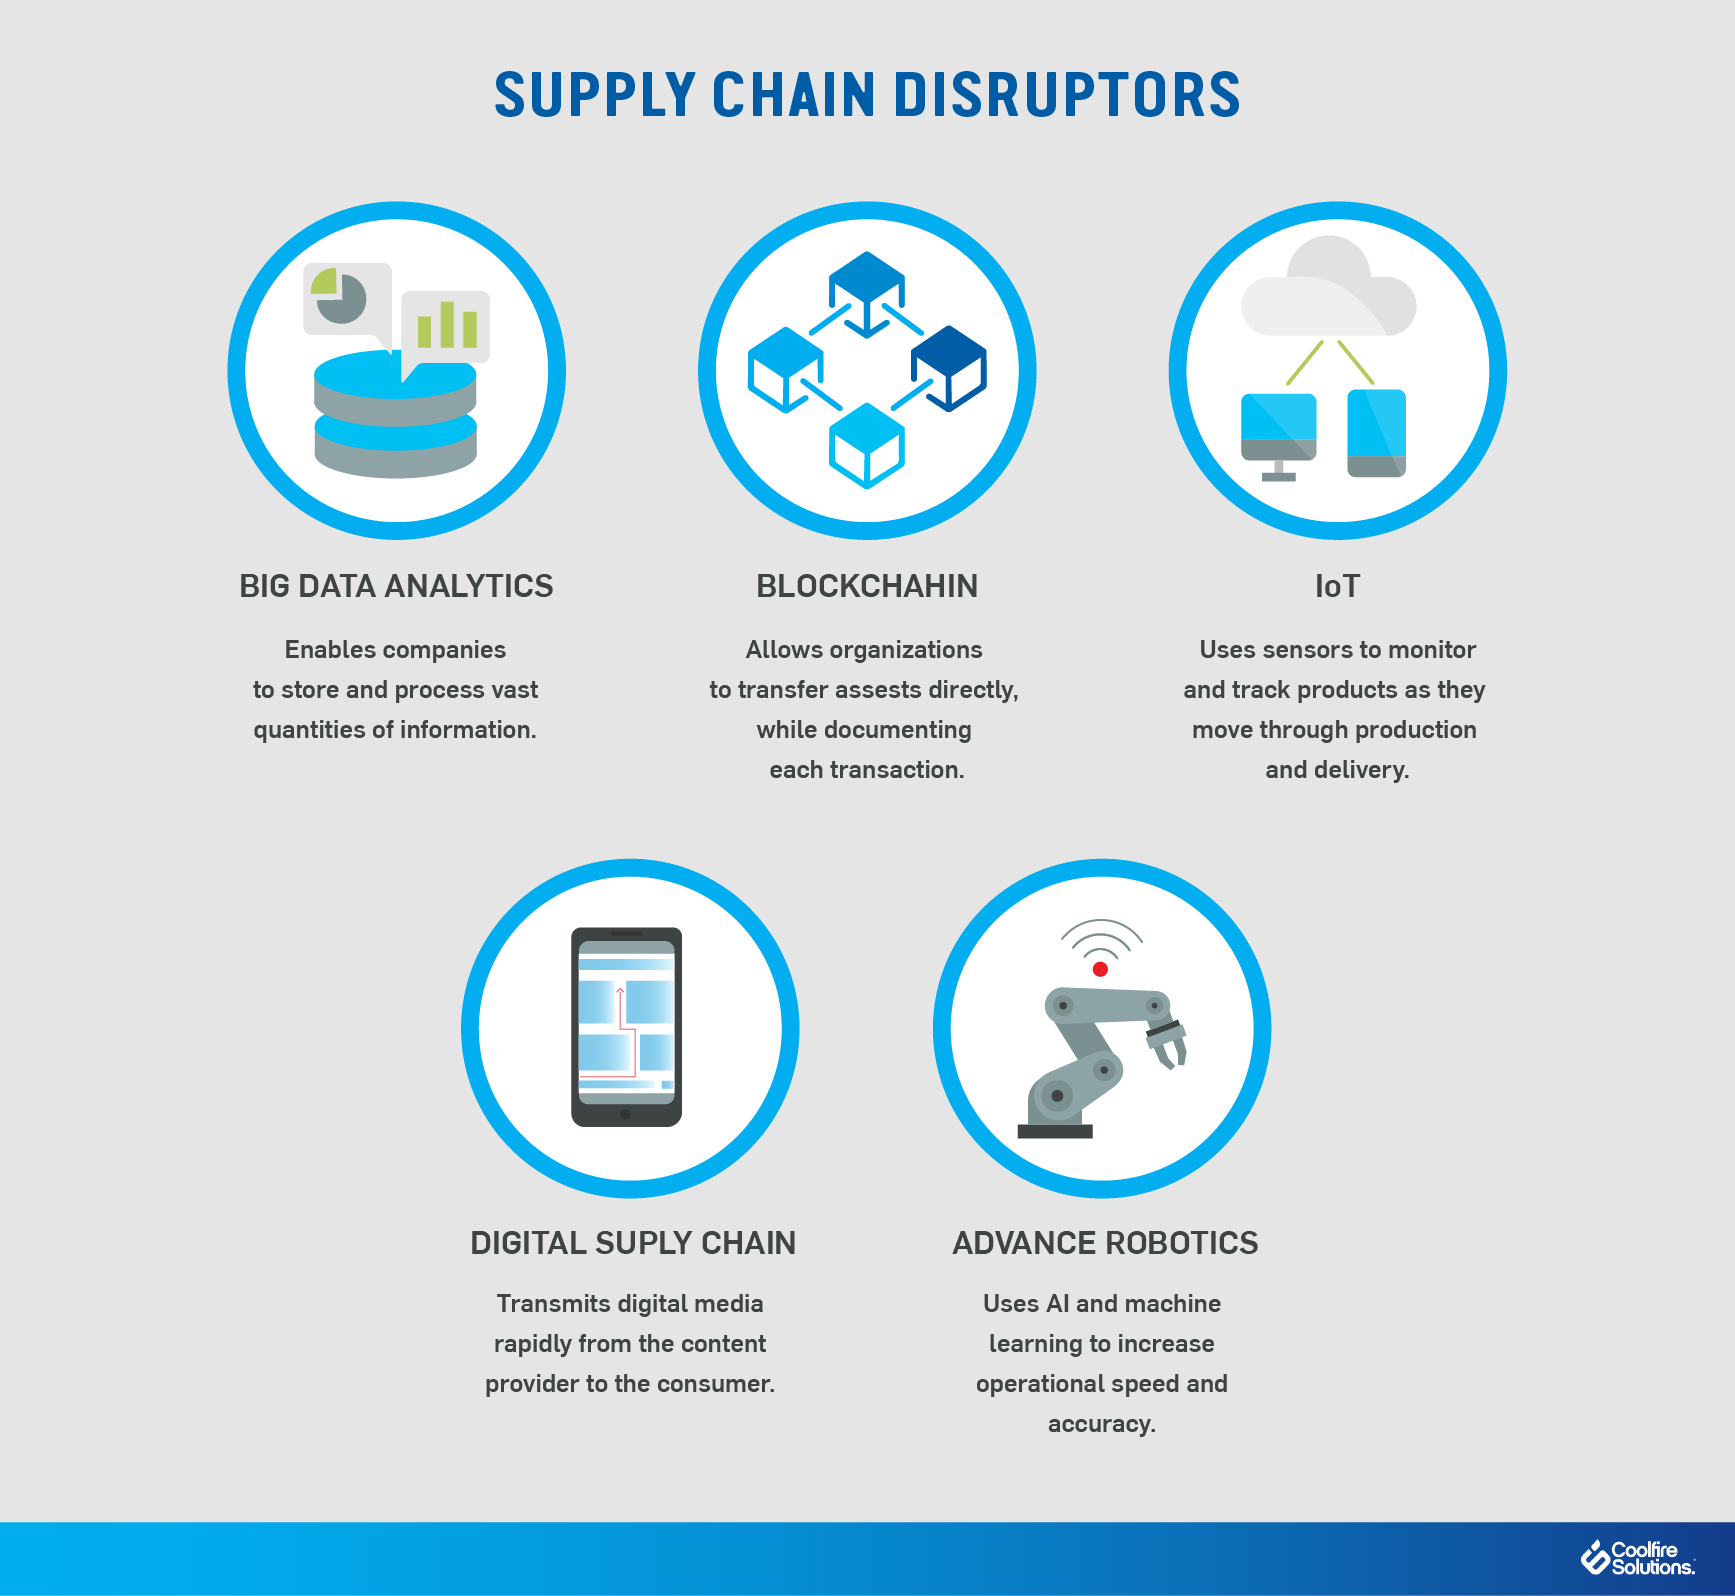 Supply Chain Disruptors